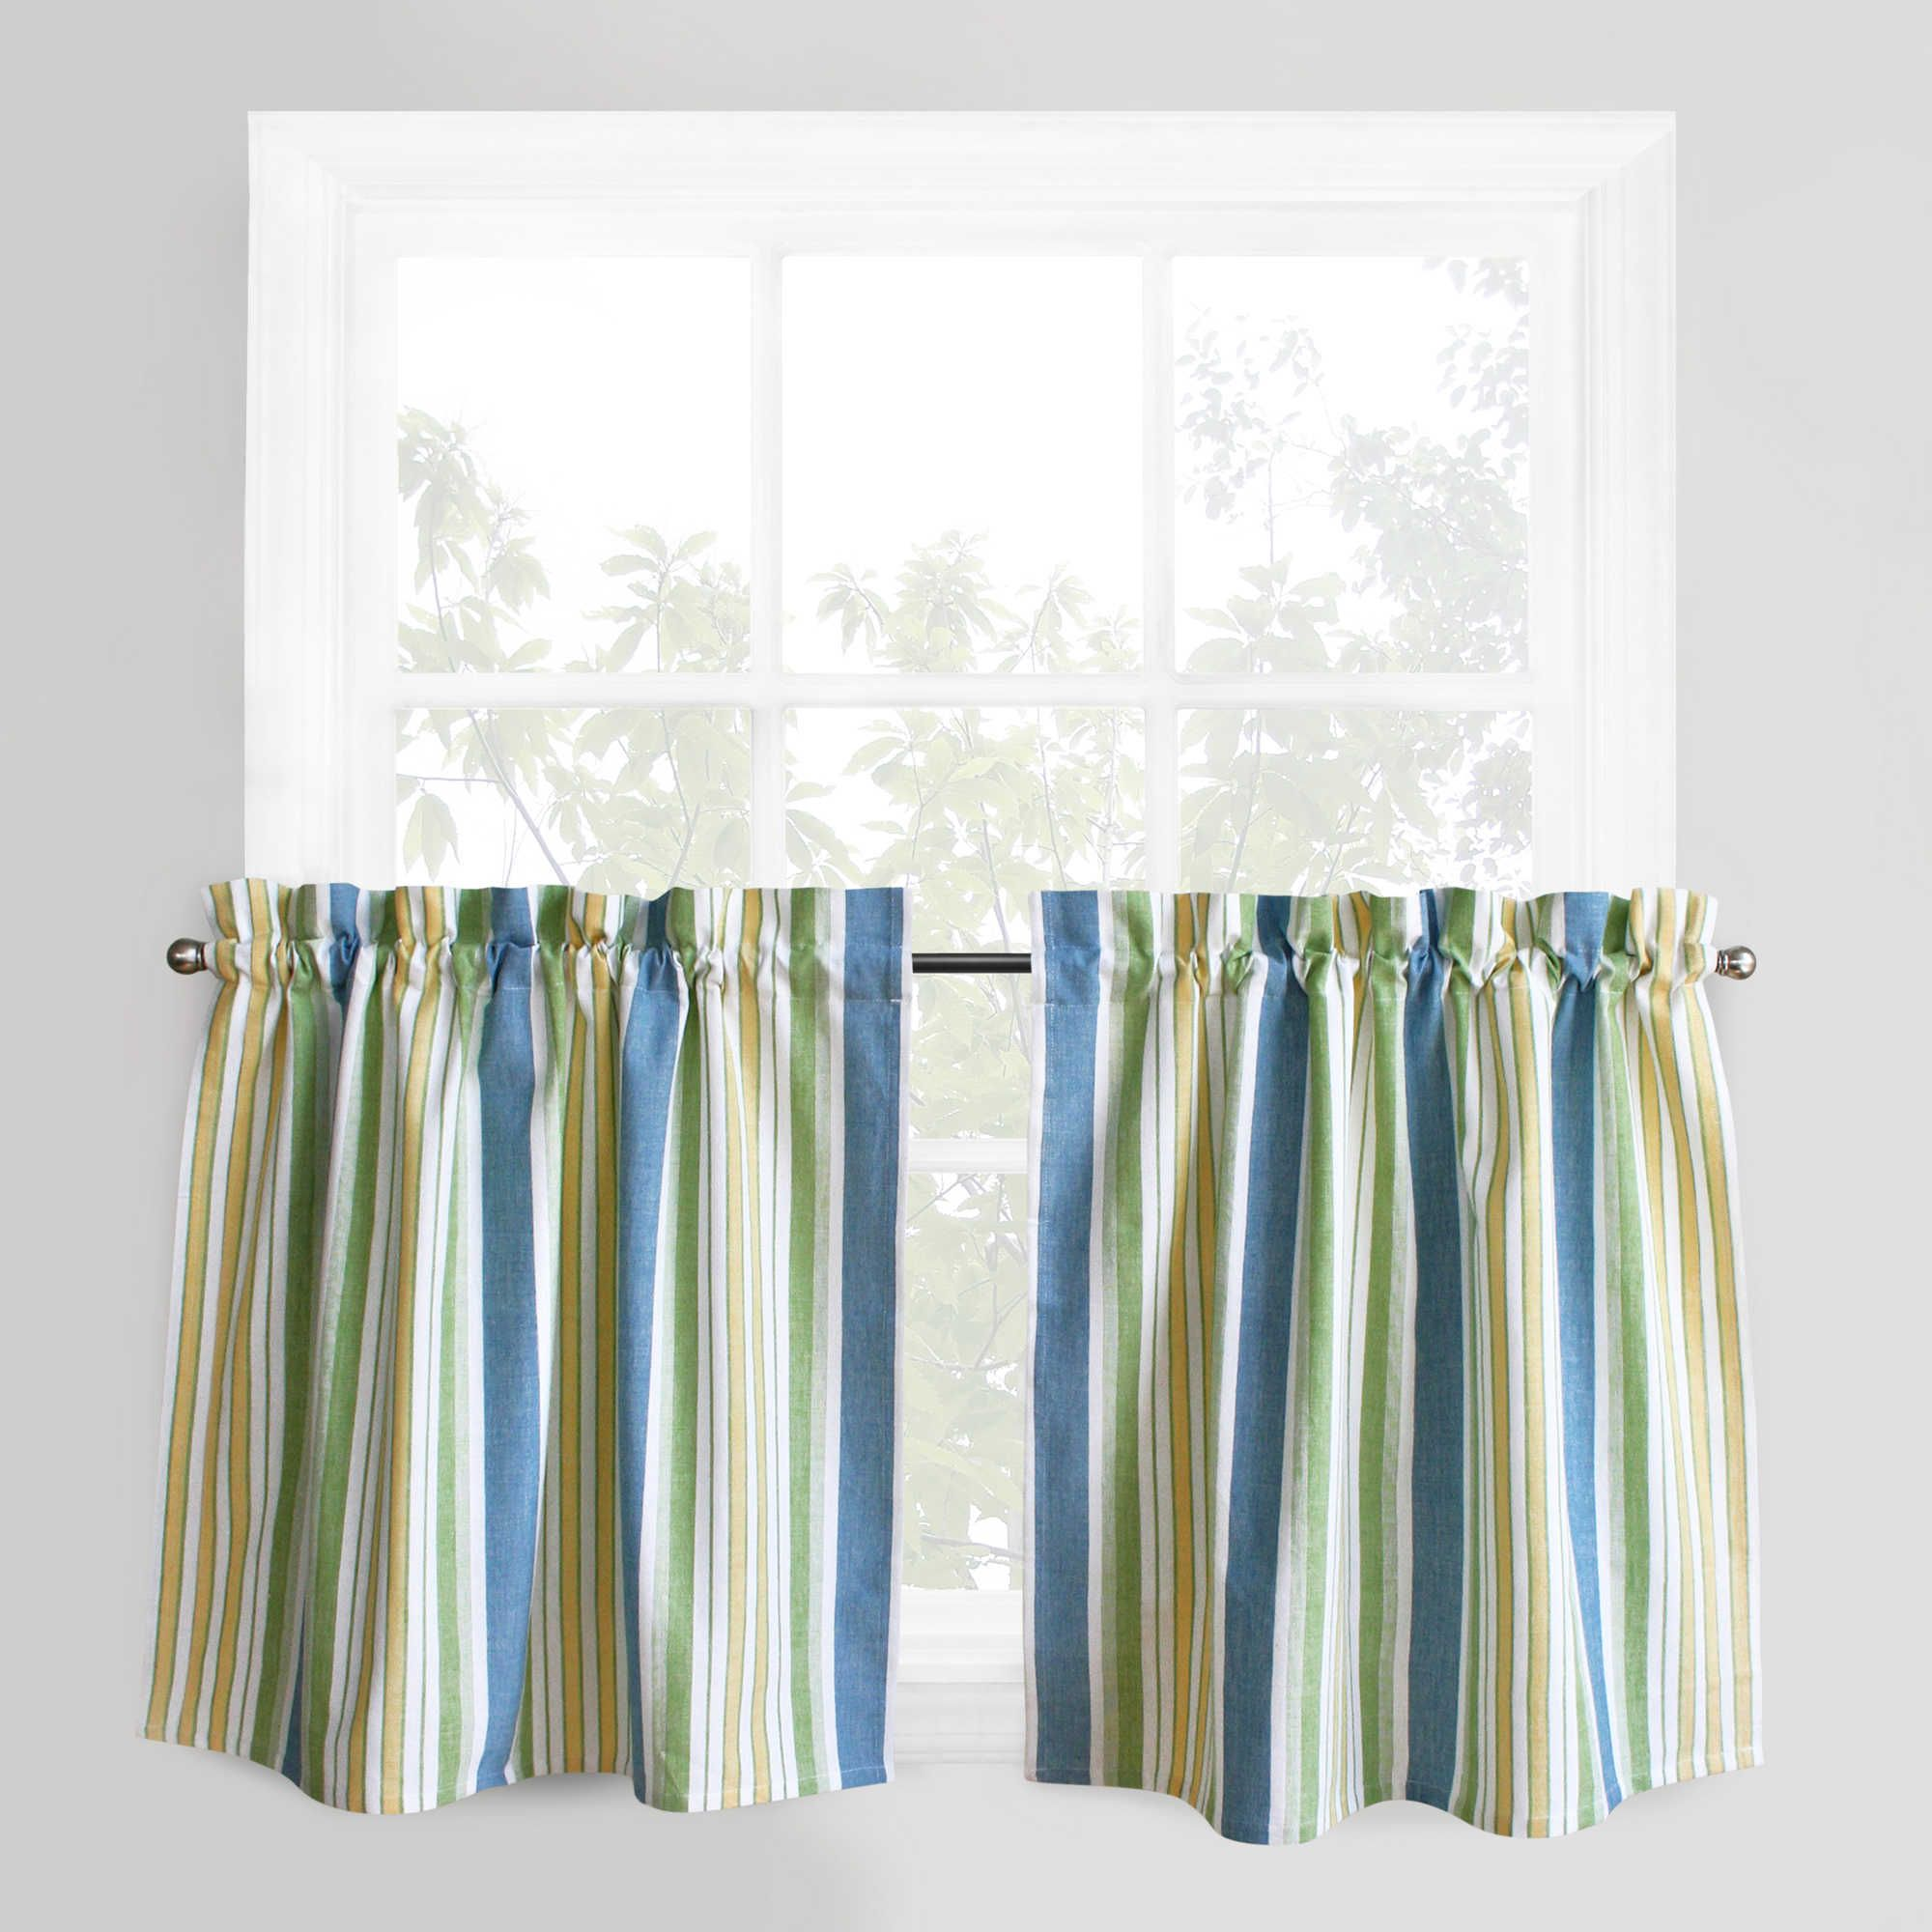 Park B. Smith Cape Cod Stripe 36 Inch Window Curtain Tier Pair In Blue